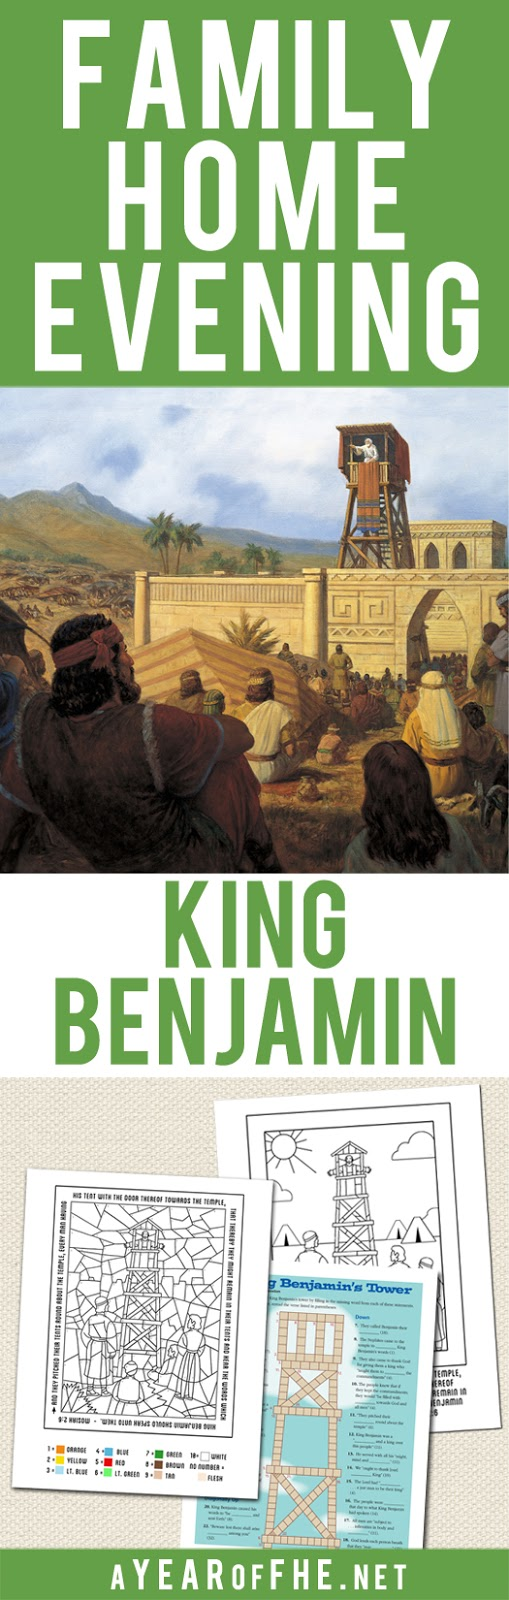 A Year of FHE: Year 03/Lesson 26: King Benjamin